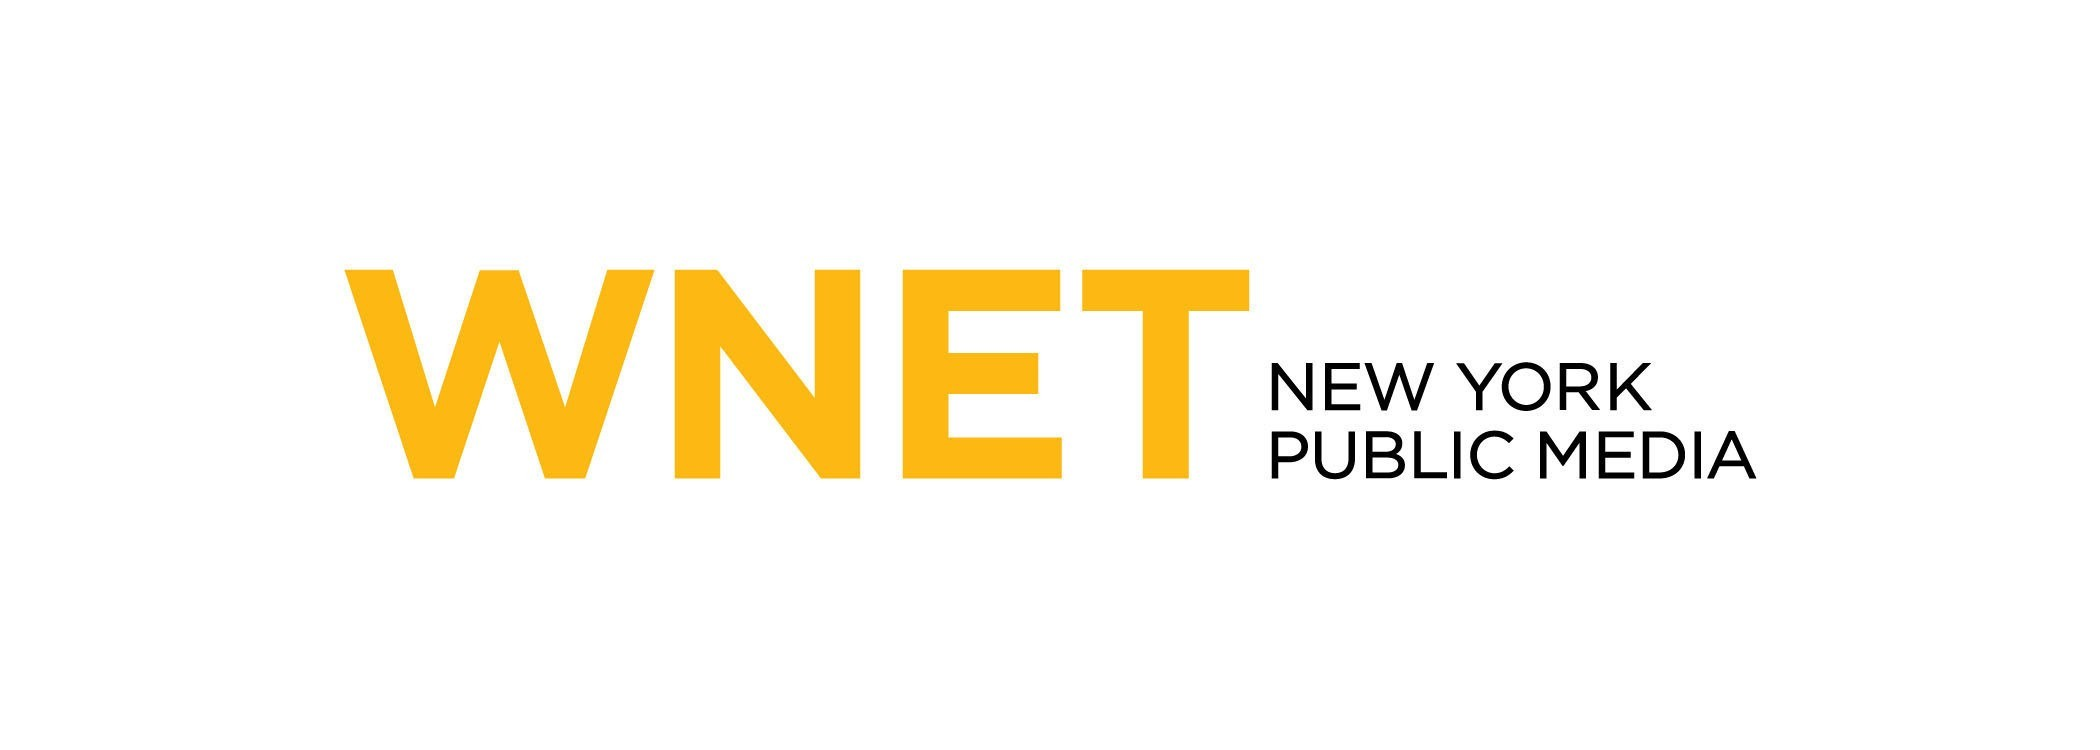 WNET is New York's flagship PBS station. (PRNewsFoto/WNET) (PRNewsfoto/WNET)